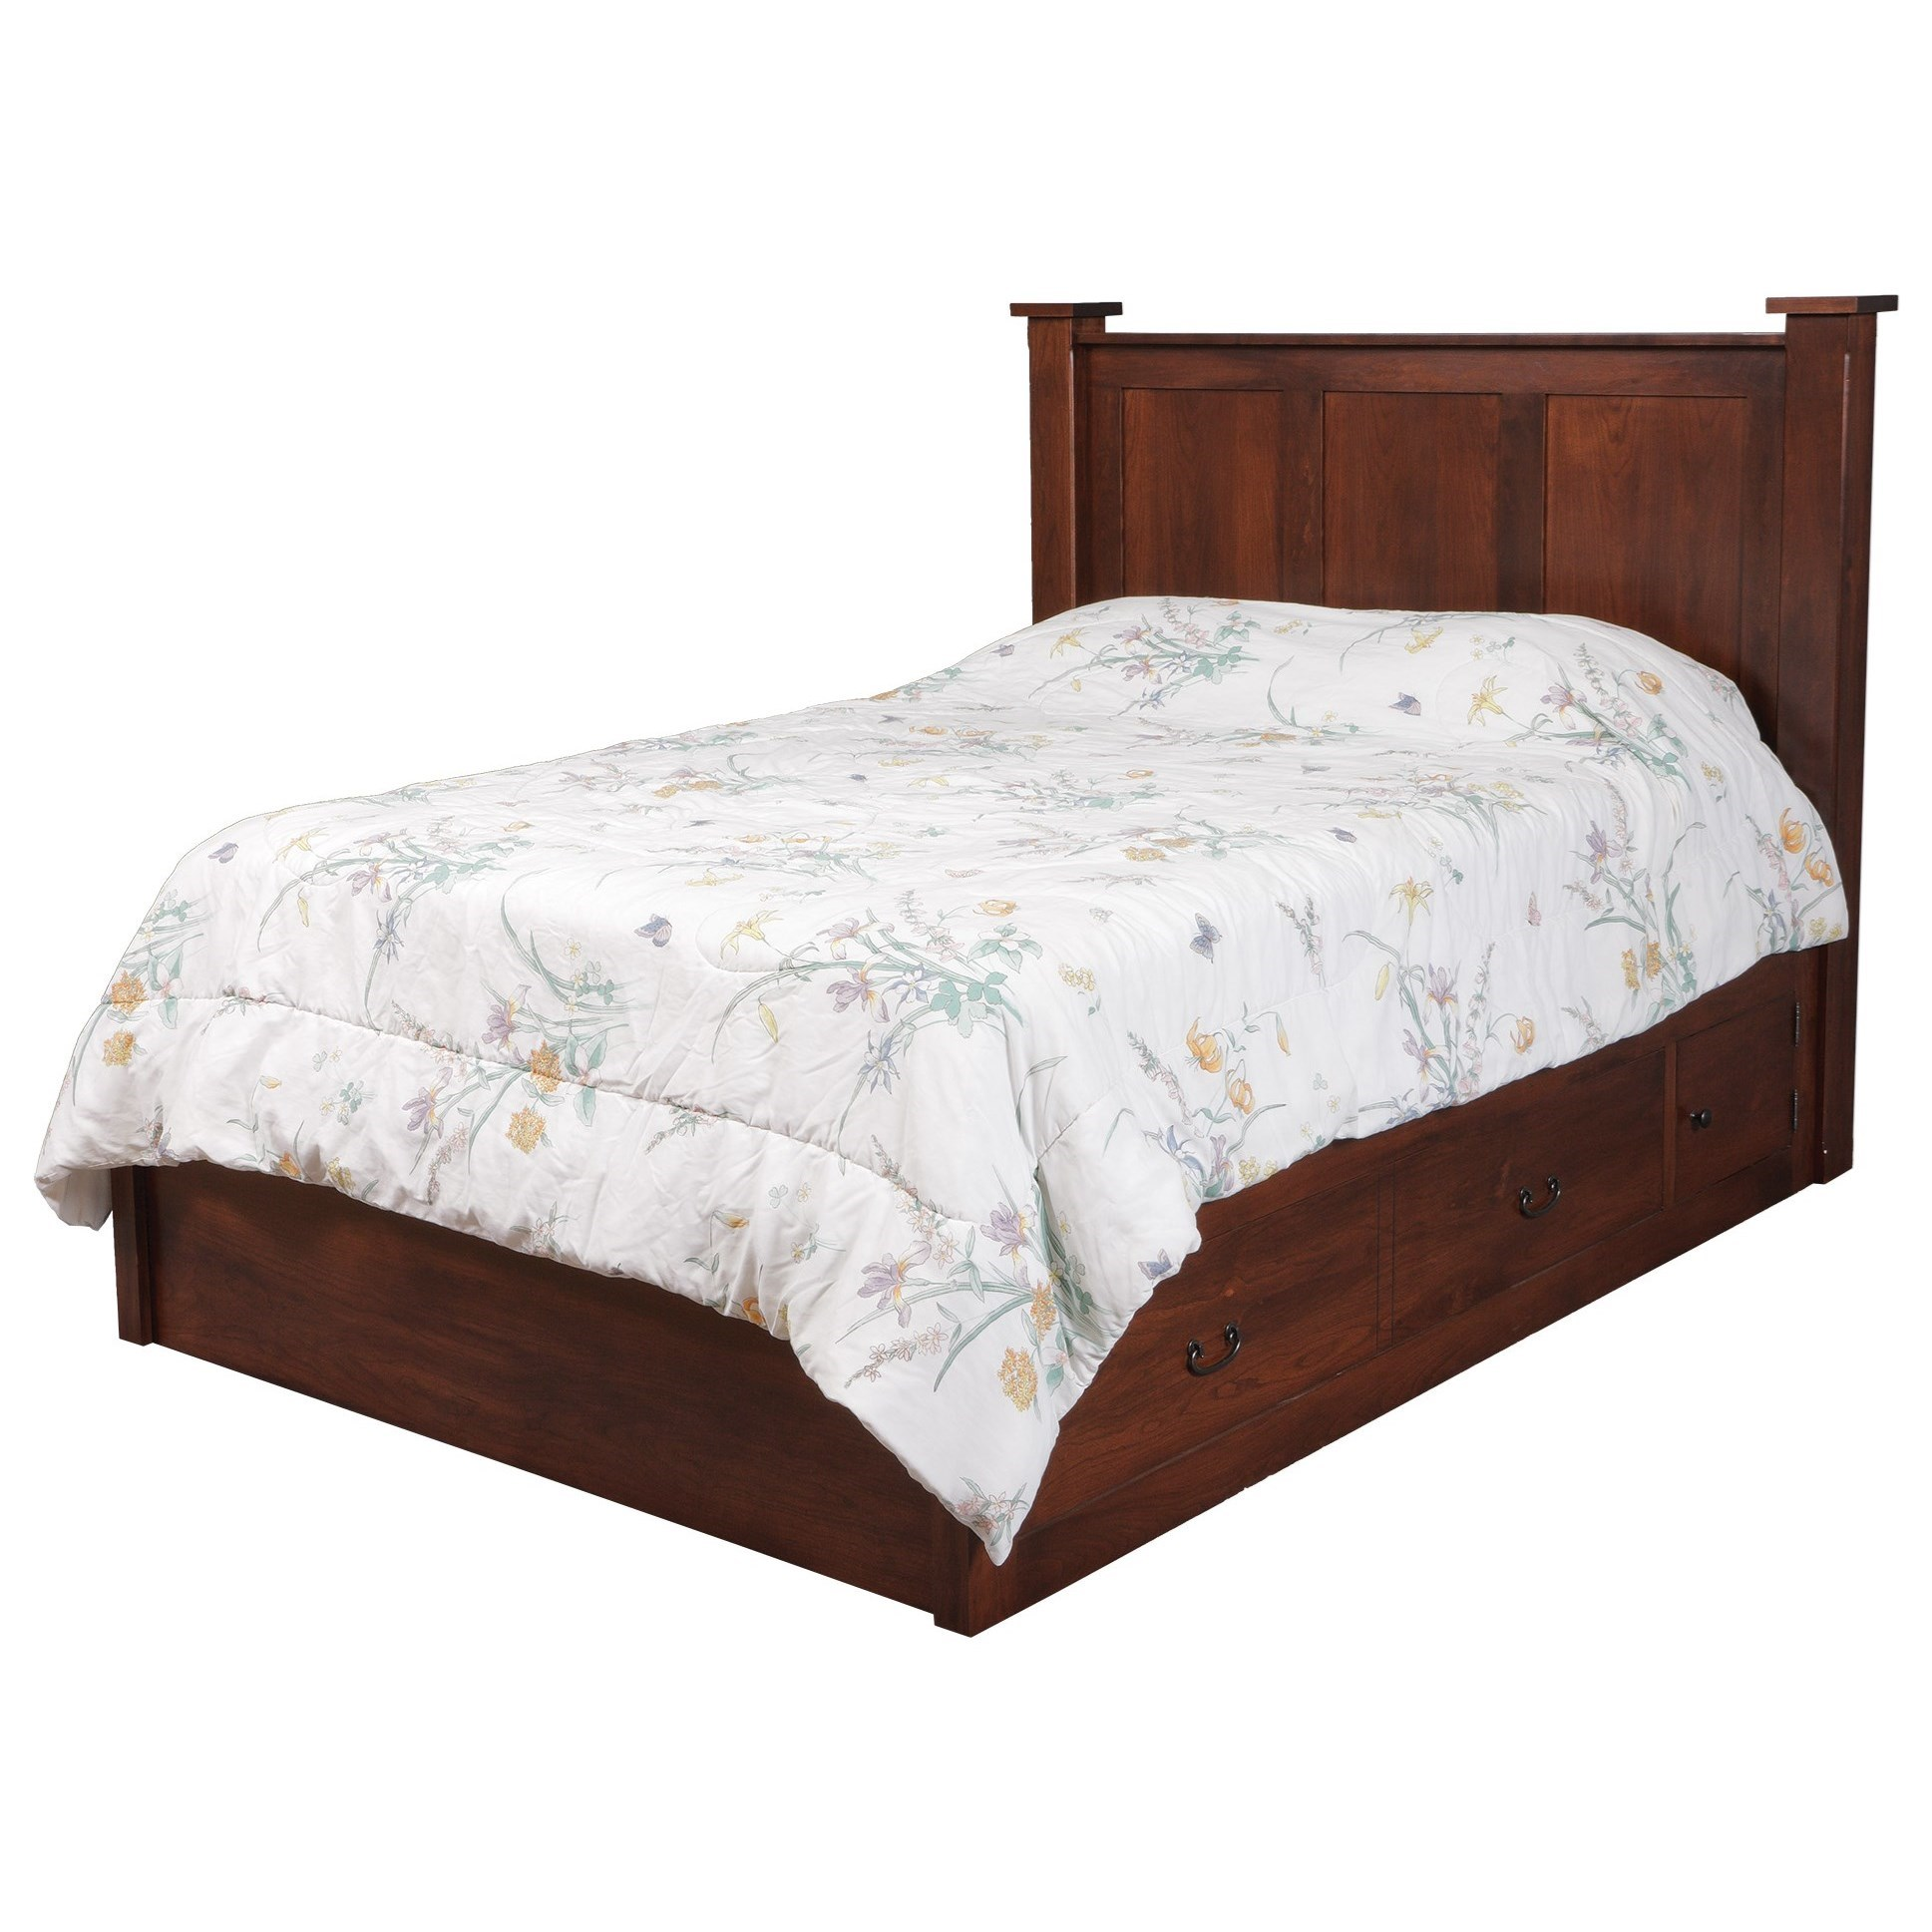 Treasure Queen Pedestal Bed W/ Storage Drawer by Daniel's Amish at Lapeer Furniture & Mattress Center